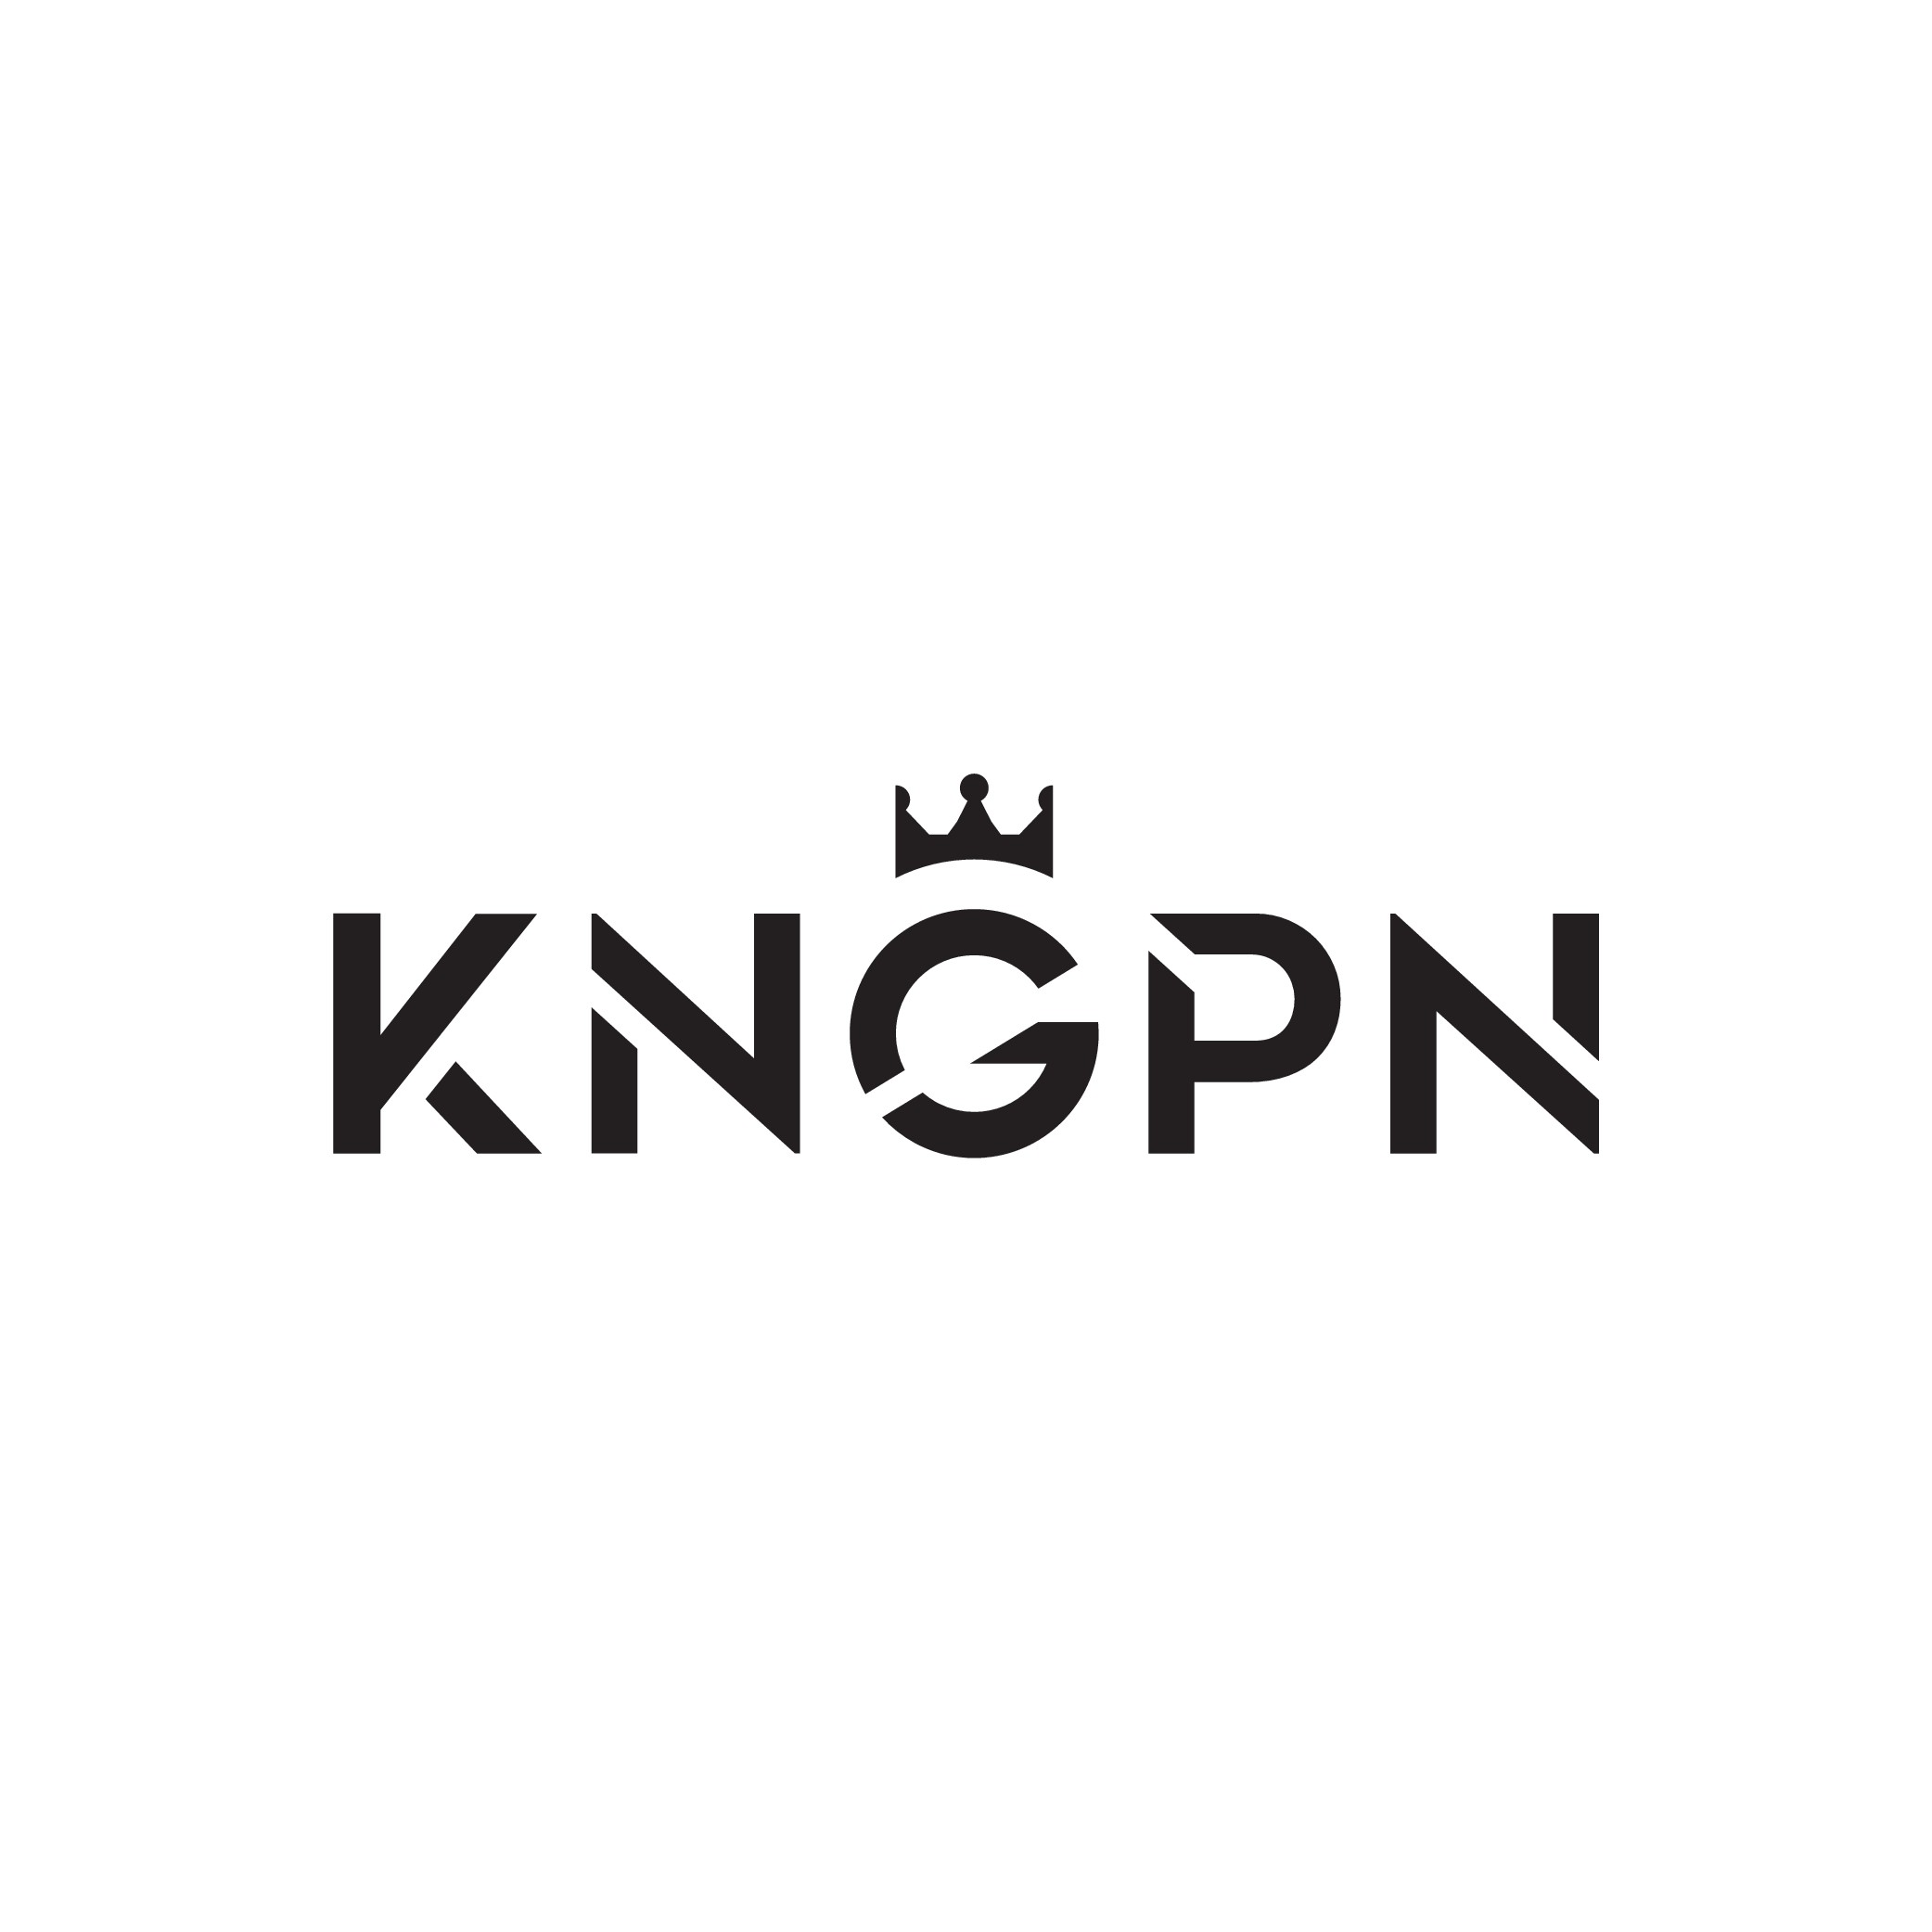 KNGPN mens' accessories store needs an AWESOME logo